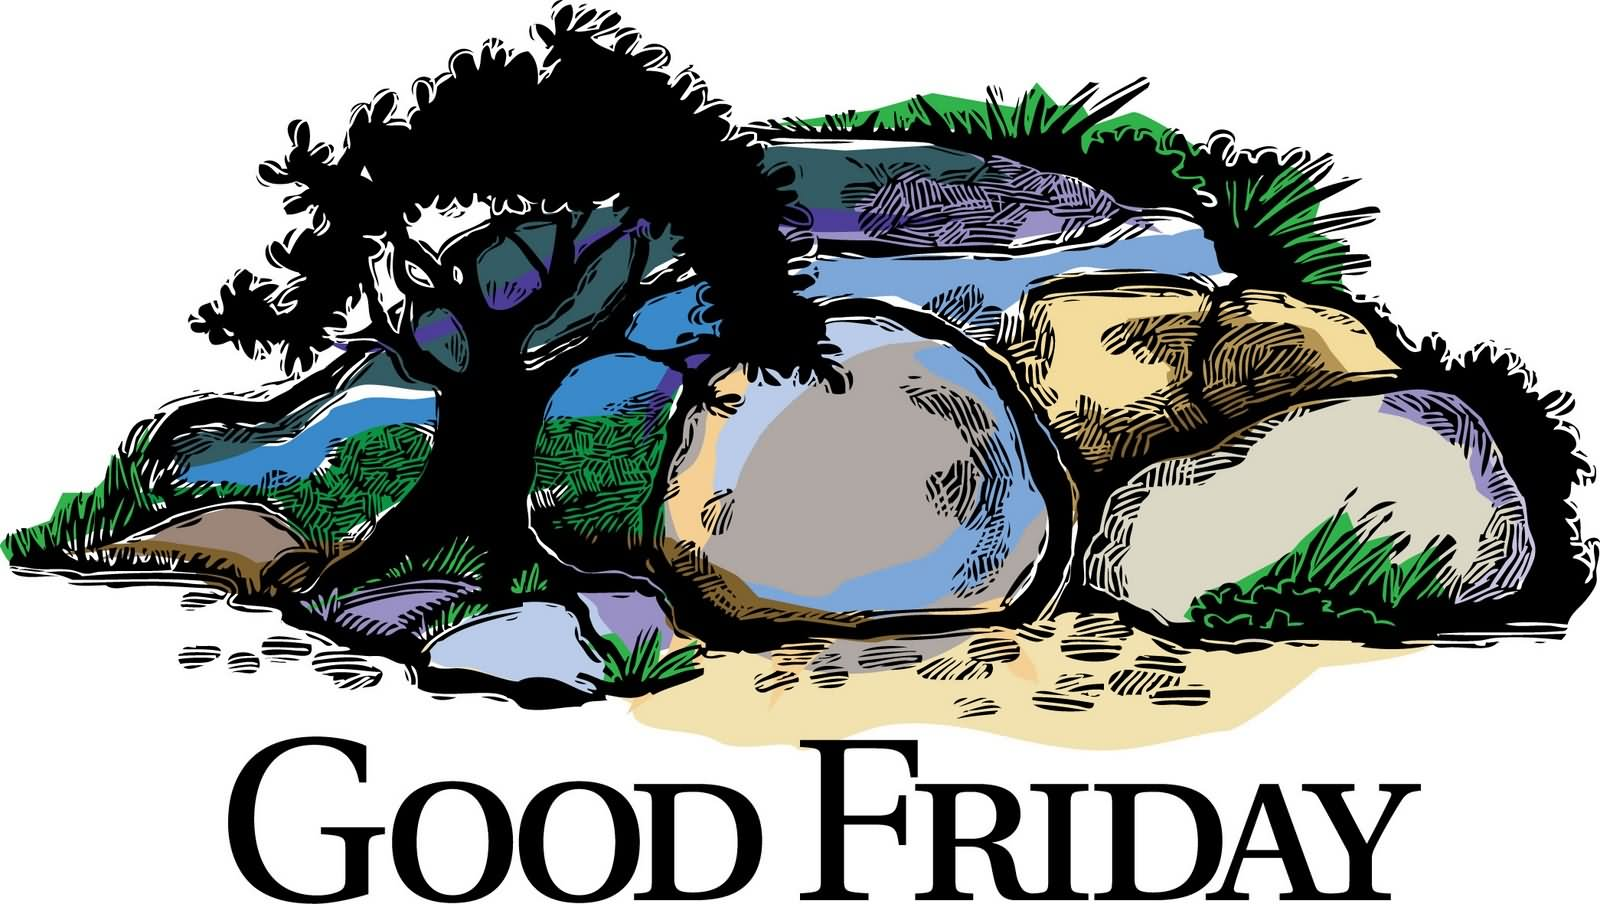 20 very beautiful good friday clipart pictures rh askideas com good friday clip art free religious good friday clipart images